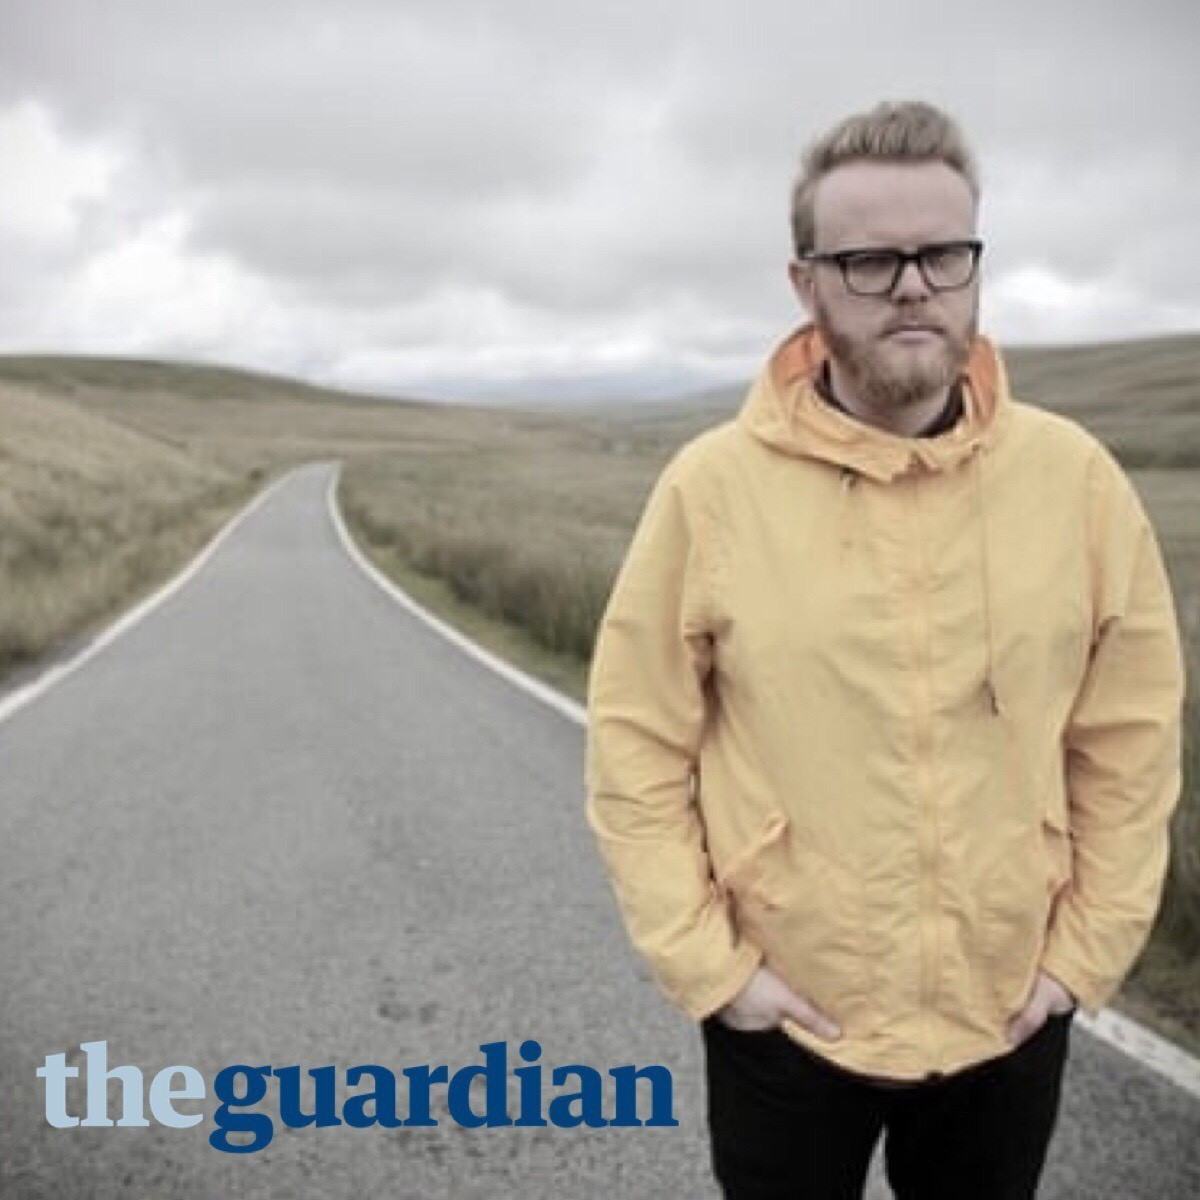 Articlehome huw stephen picture with the guardian text